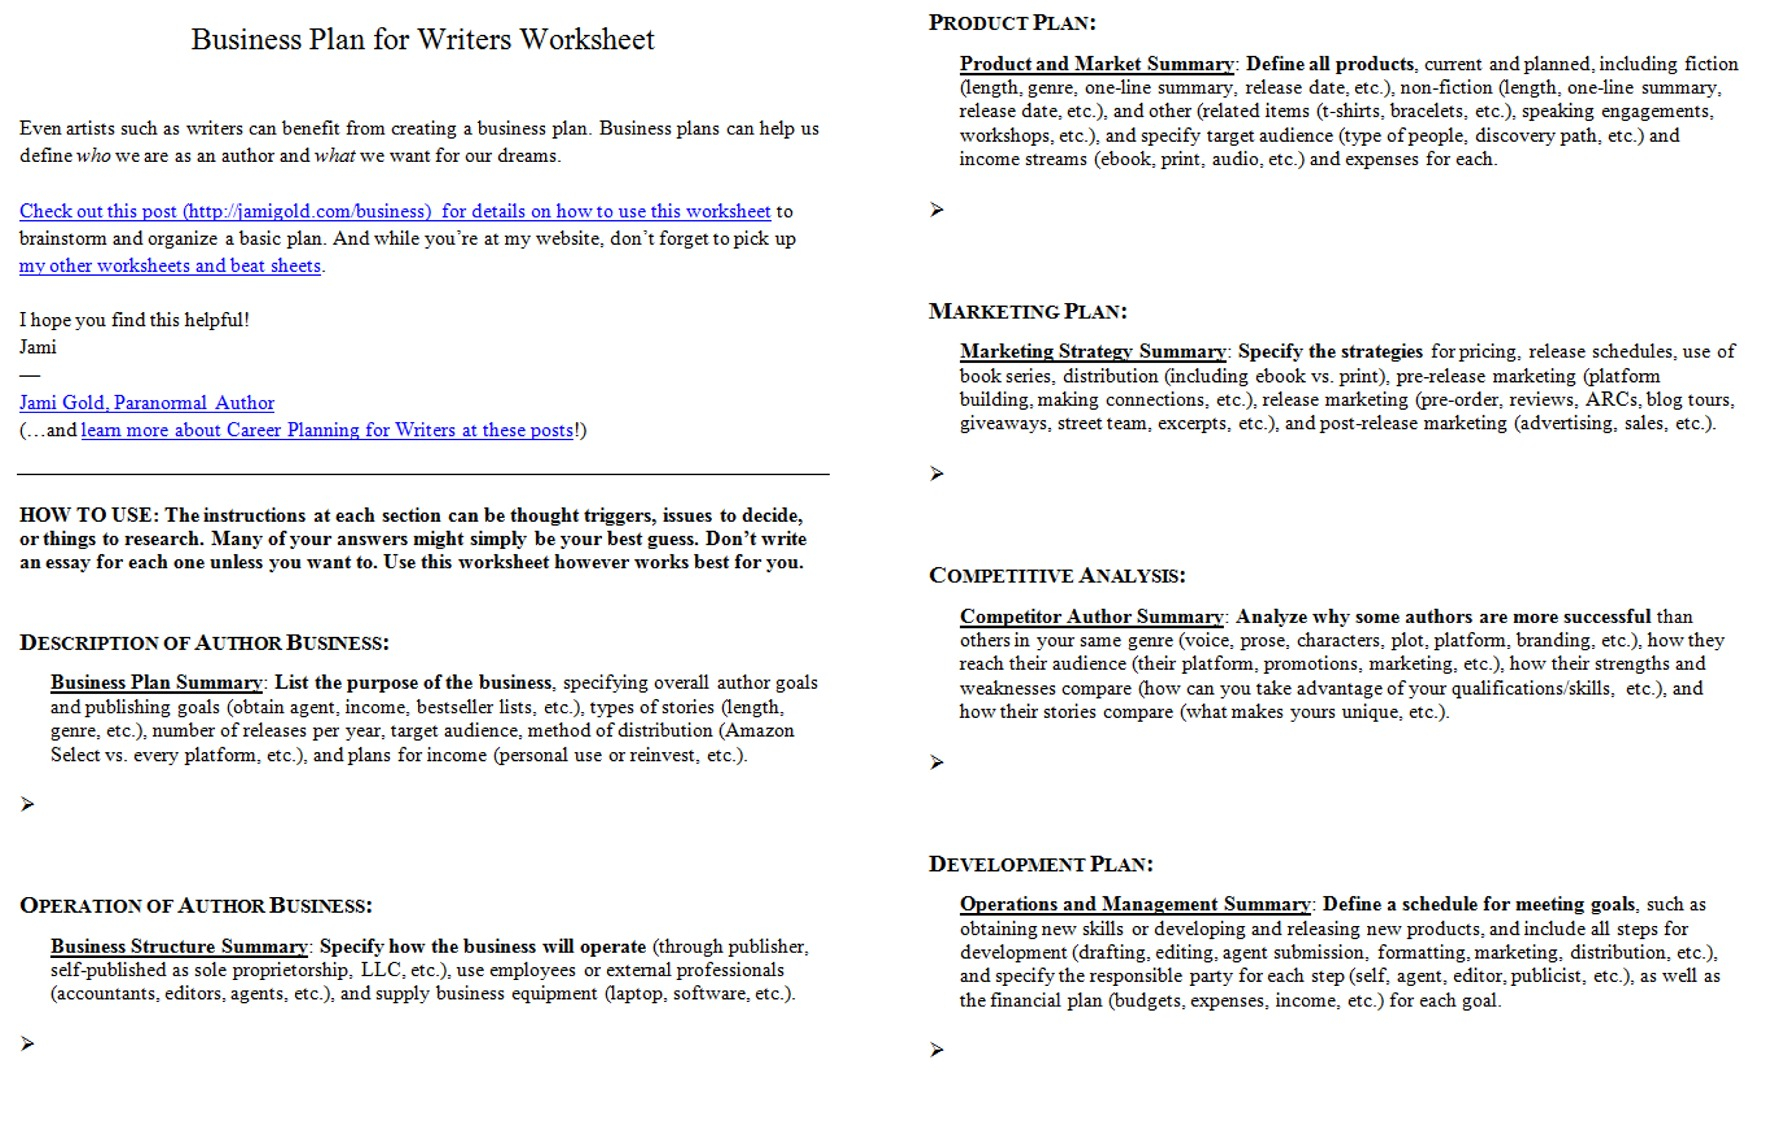 Proatmealus  Wonderful Worksheets For Writers  Jami Gold Paranormal Author With Fetching Screen Shot Of Both Pages Of The Business Plan For Writers Worksheet With Beautiful Basic Money Management Worksheets Also Adjectives Free Worksheets In Addition Year Two Worksheets And Addition Subtraction Multiplication Worksheets As Well As  And  Times Tables Worksheets Additionally Multiplication By  Worksheet From Jamigoldcom With Proatmealus  Fetching Worksheets For Writers  Jami Gold Paranormal Author With Beautiful Screen Shot Of Both Pages Of The Business Plan For Writers Worksheet And Wonderful Basic Money Management Worksheets Also Adjectives Free Worksheets In Addition Year Two Worksheets From Jamigoldcom